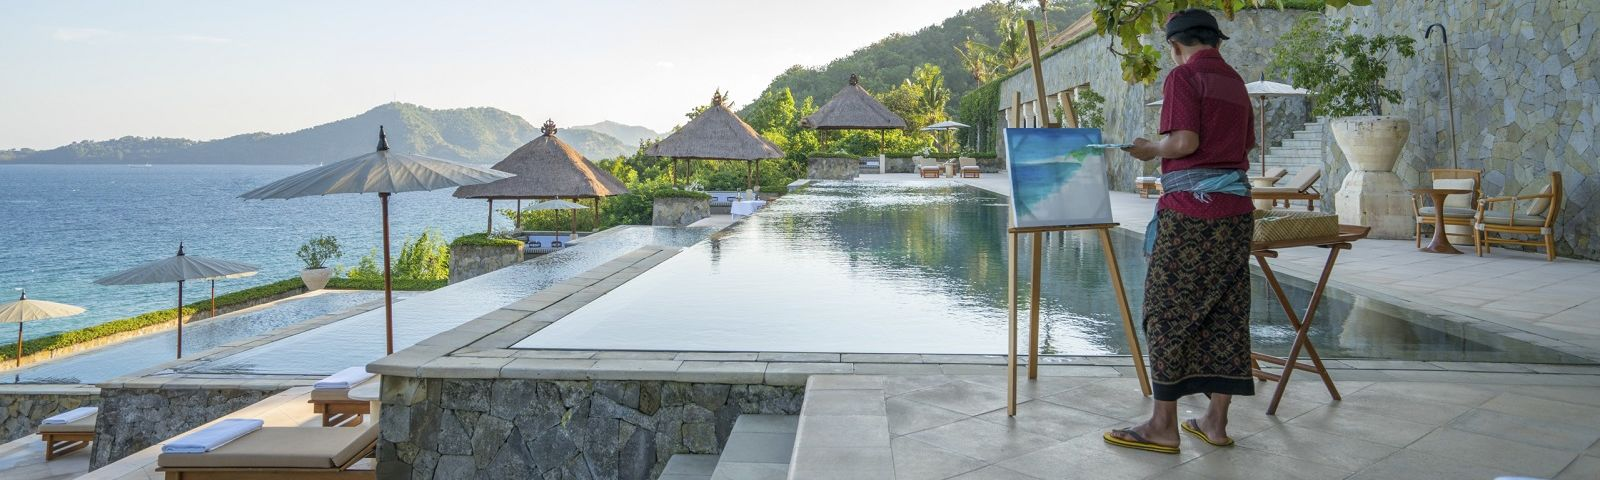 Wonderful Top 10 Swimming Pools For Your Dream Bali Holidays